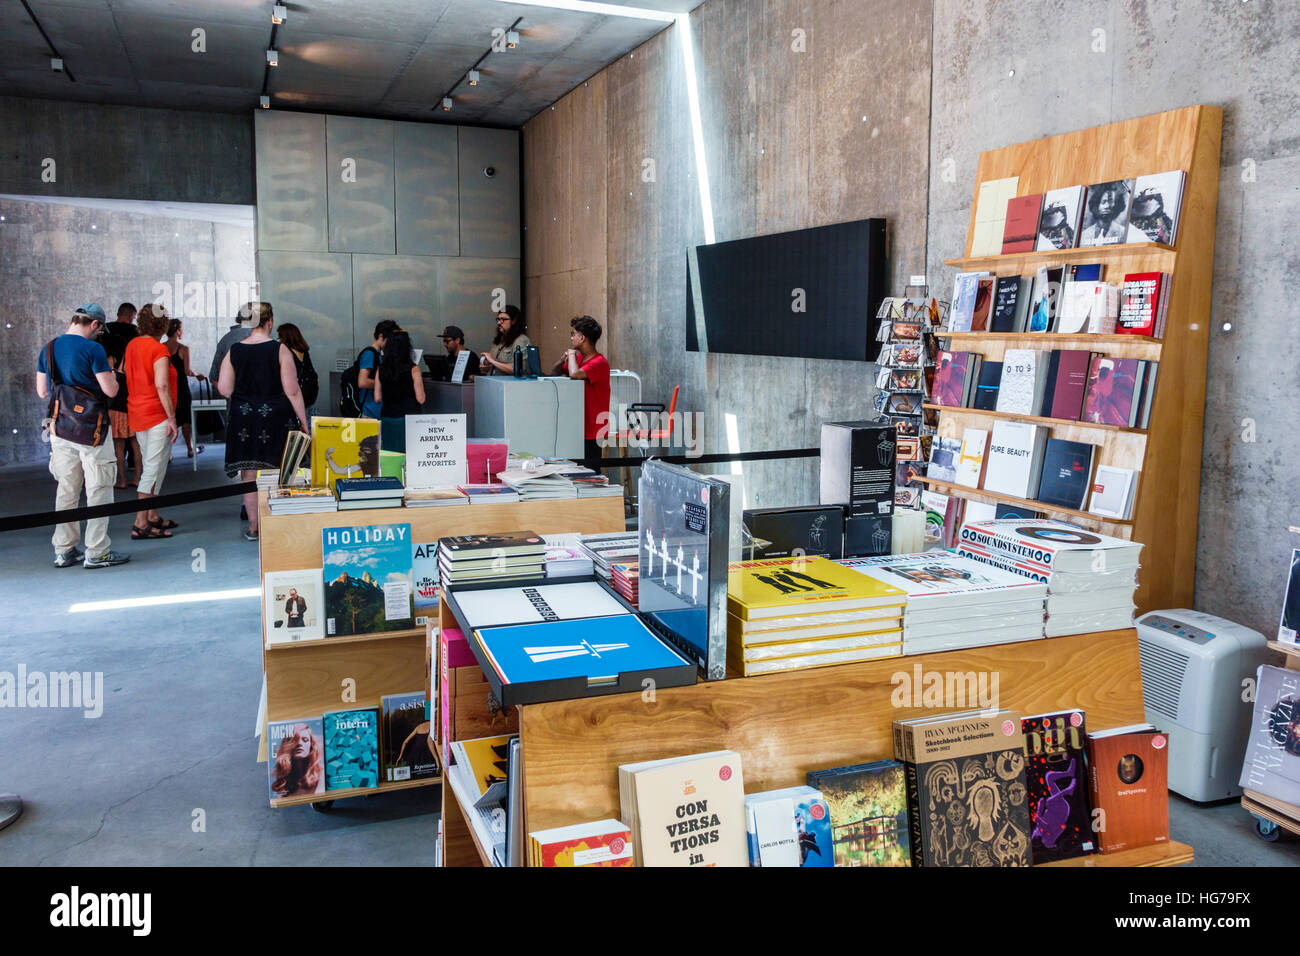 New York New York City NYC Queens Long Island City MoMA PS1 Interior  Contemporary Art Museum Store Shopping Books Display Sale